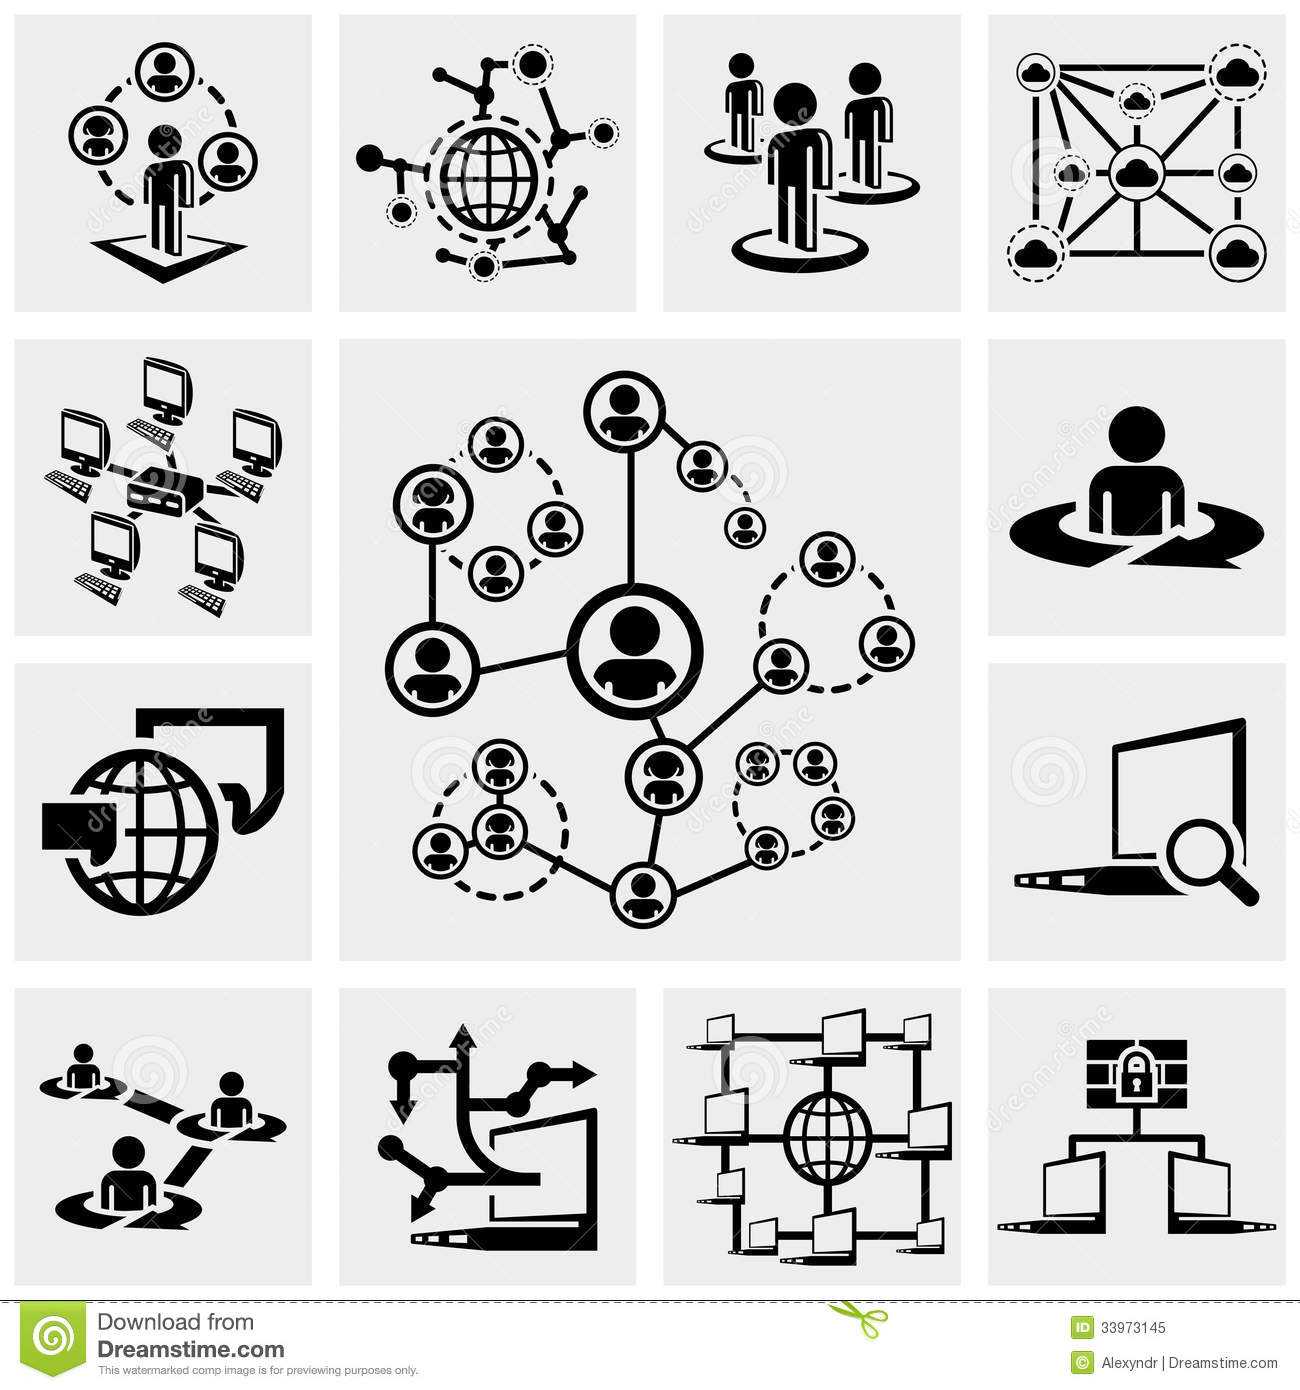 Network Icons Vector Free